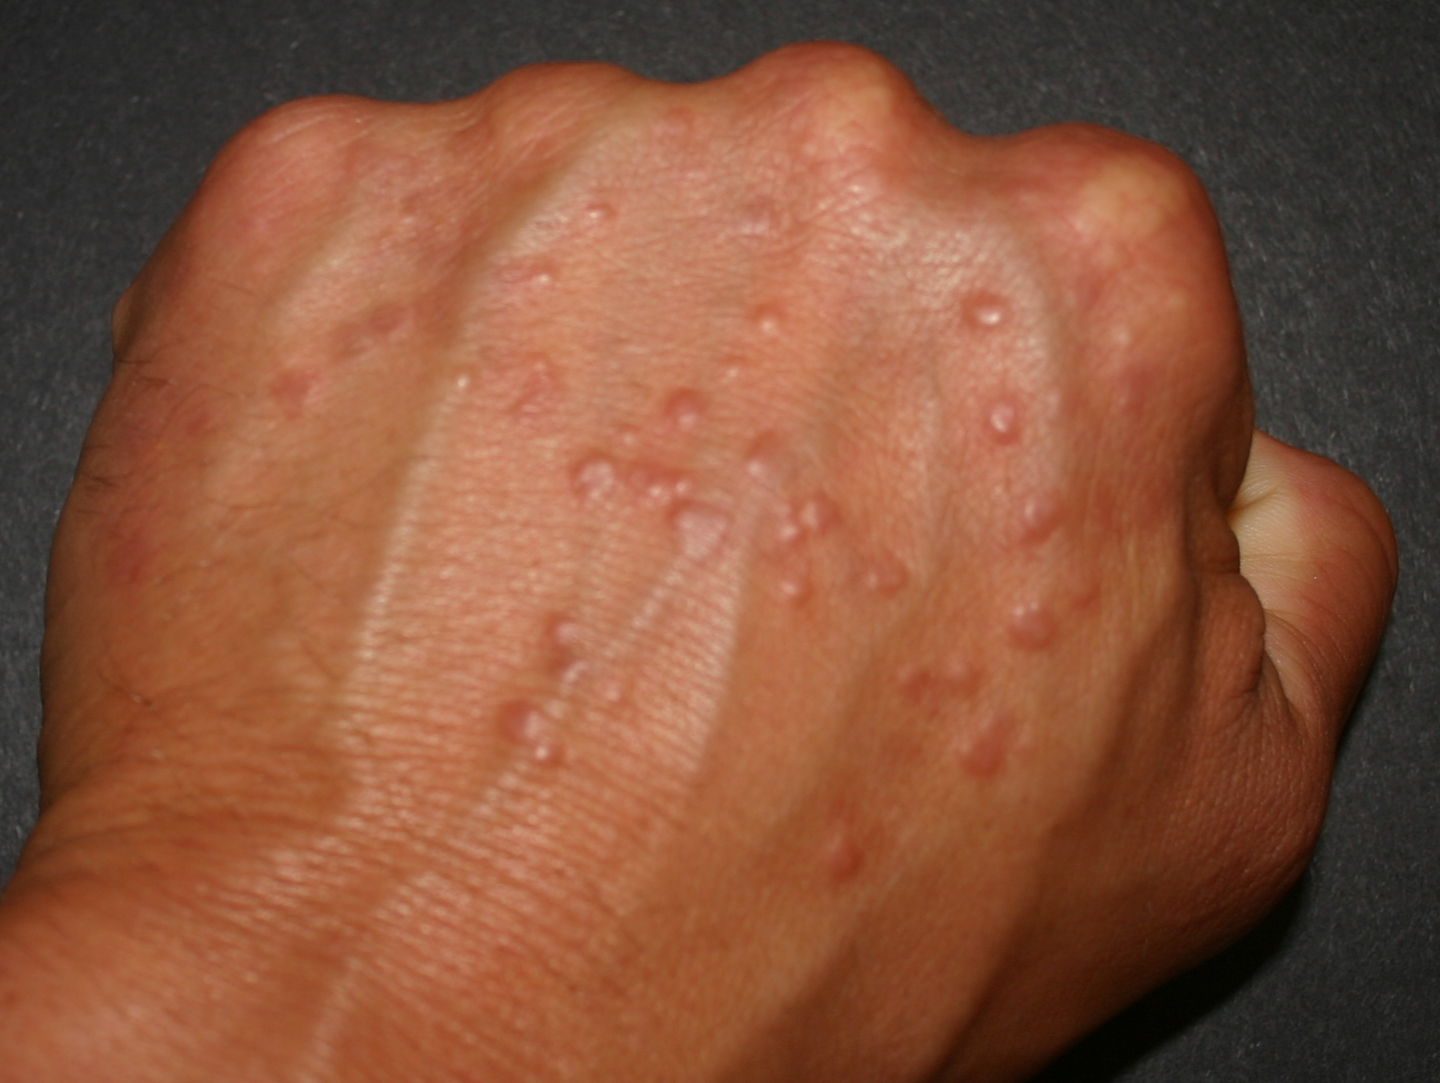 warts on hands not itchy toxin muscle